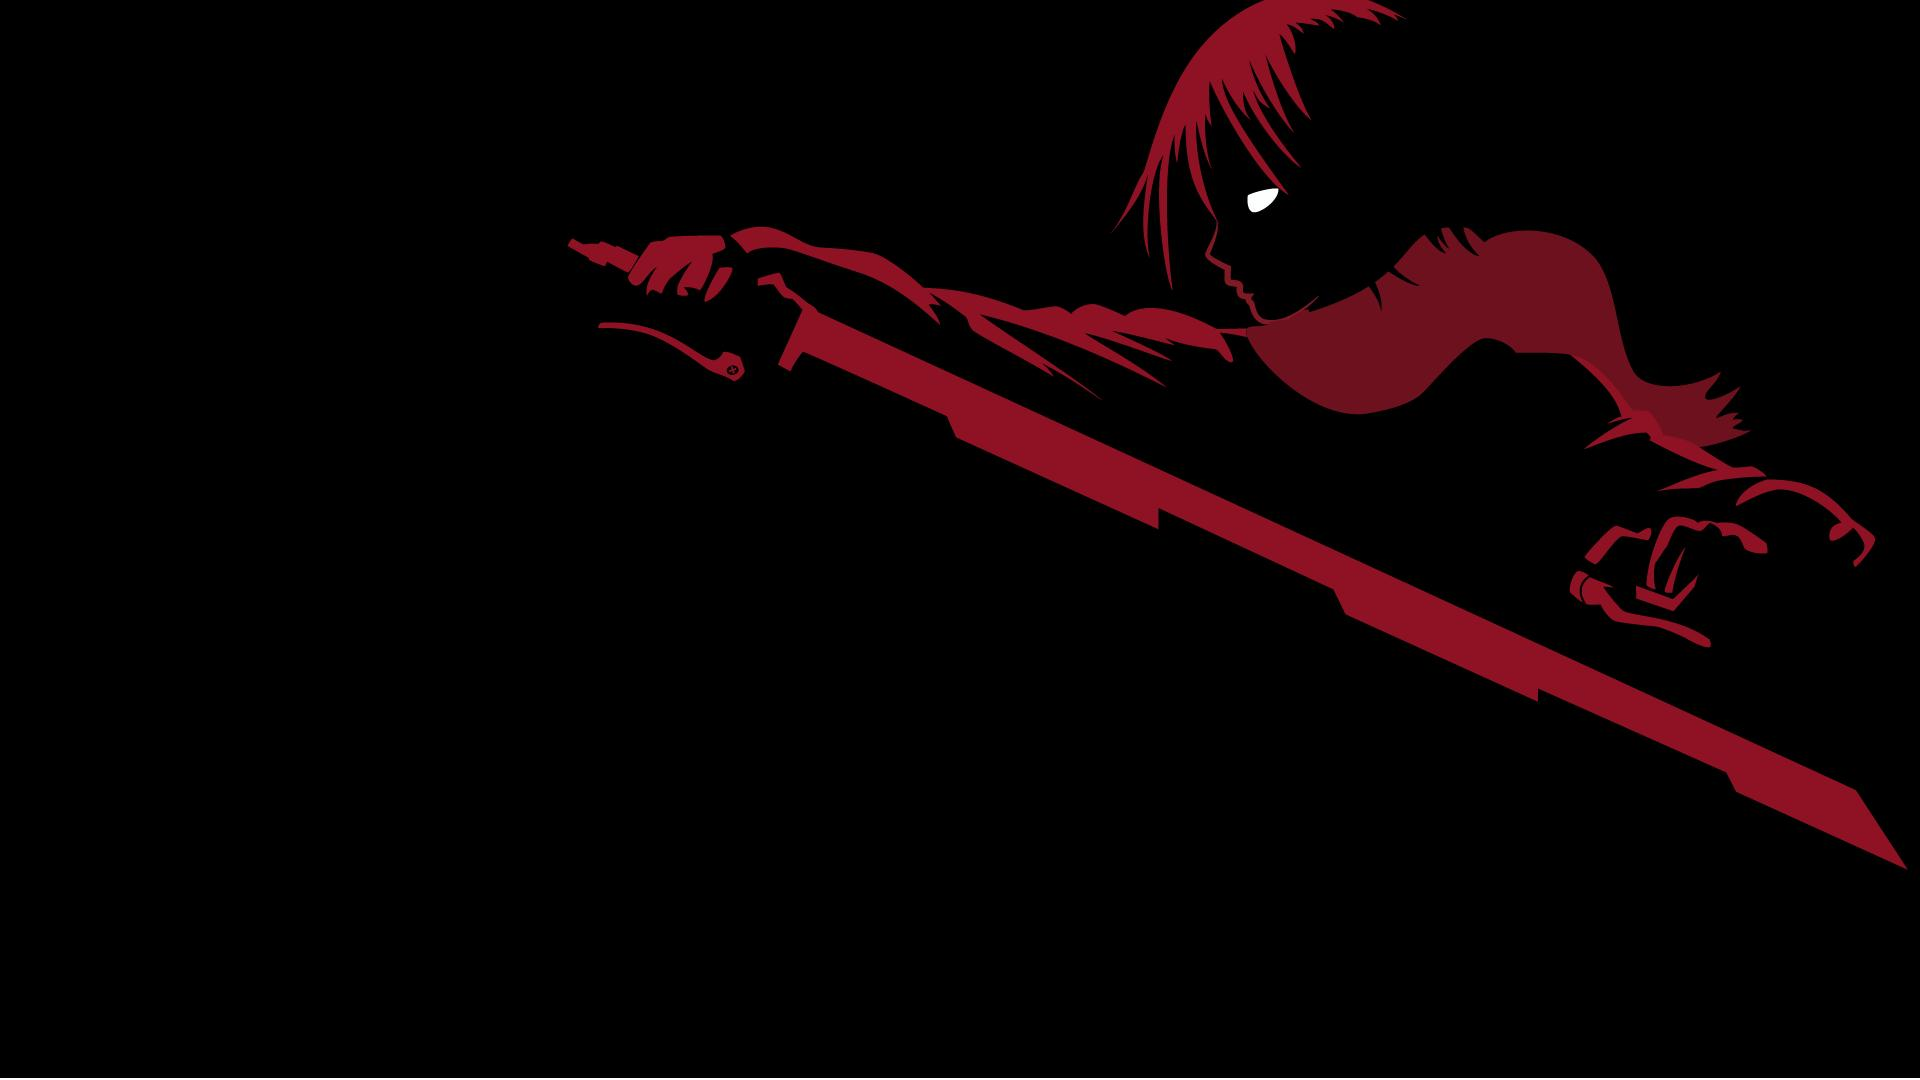 Minimalism Anime Girls Anime Mikasa Ackerman Shingeki